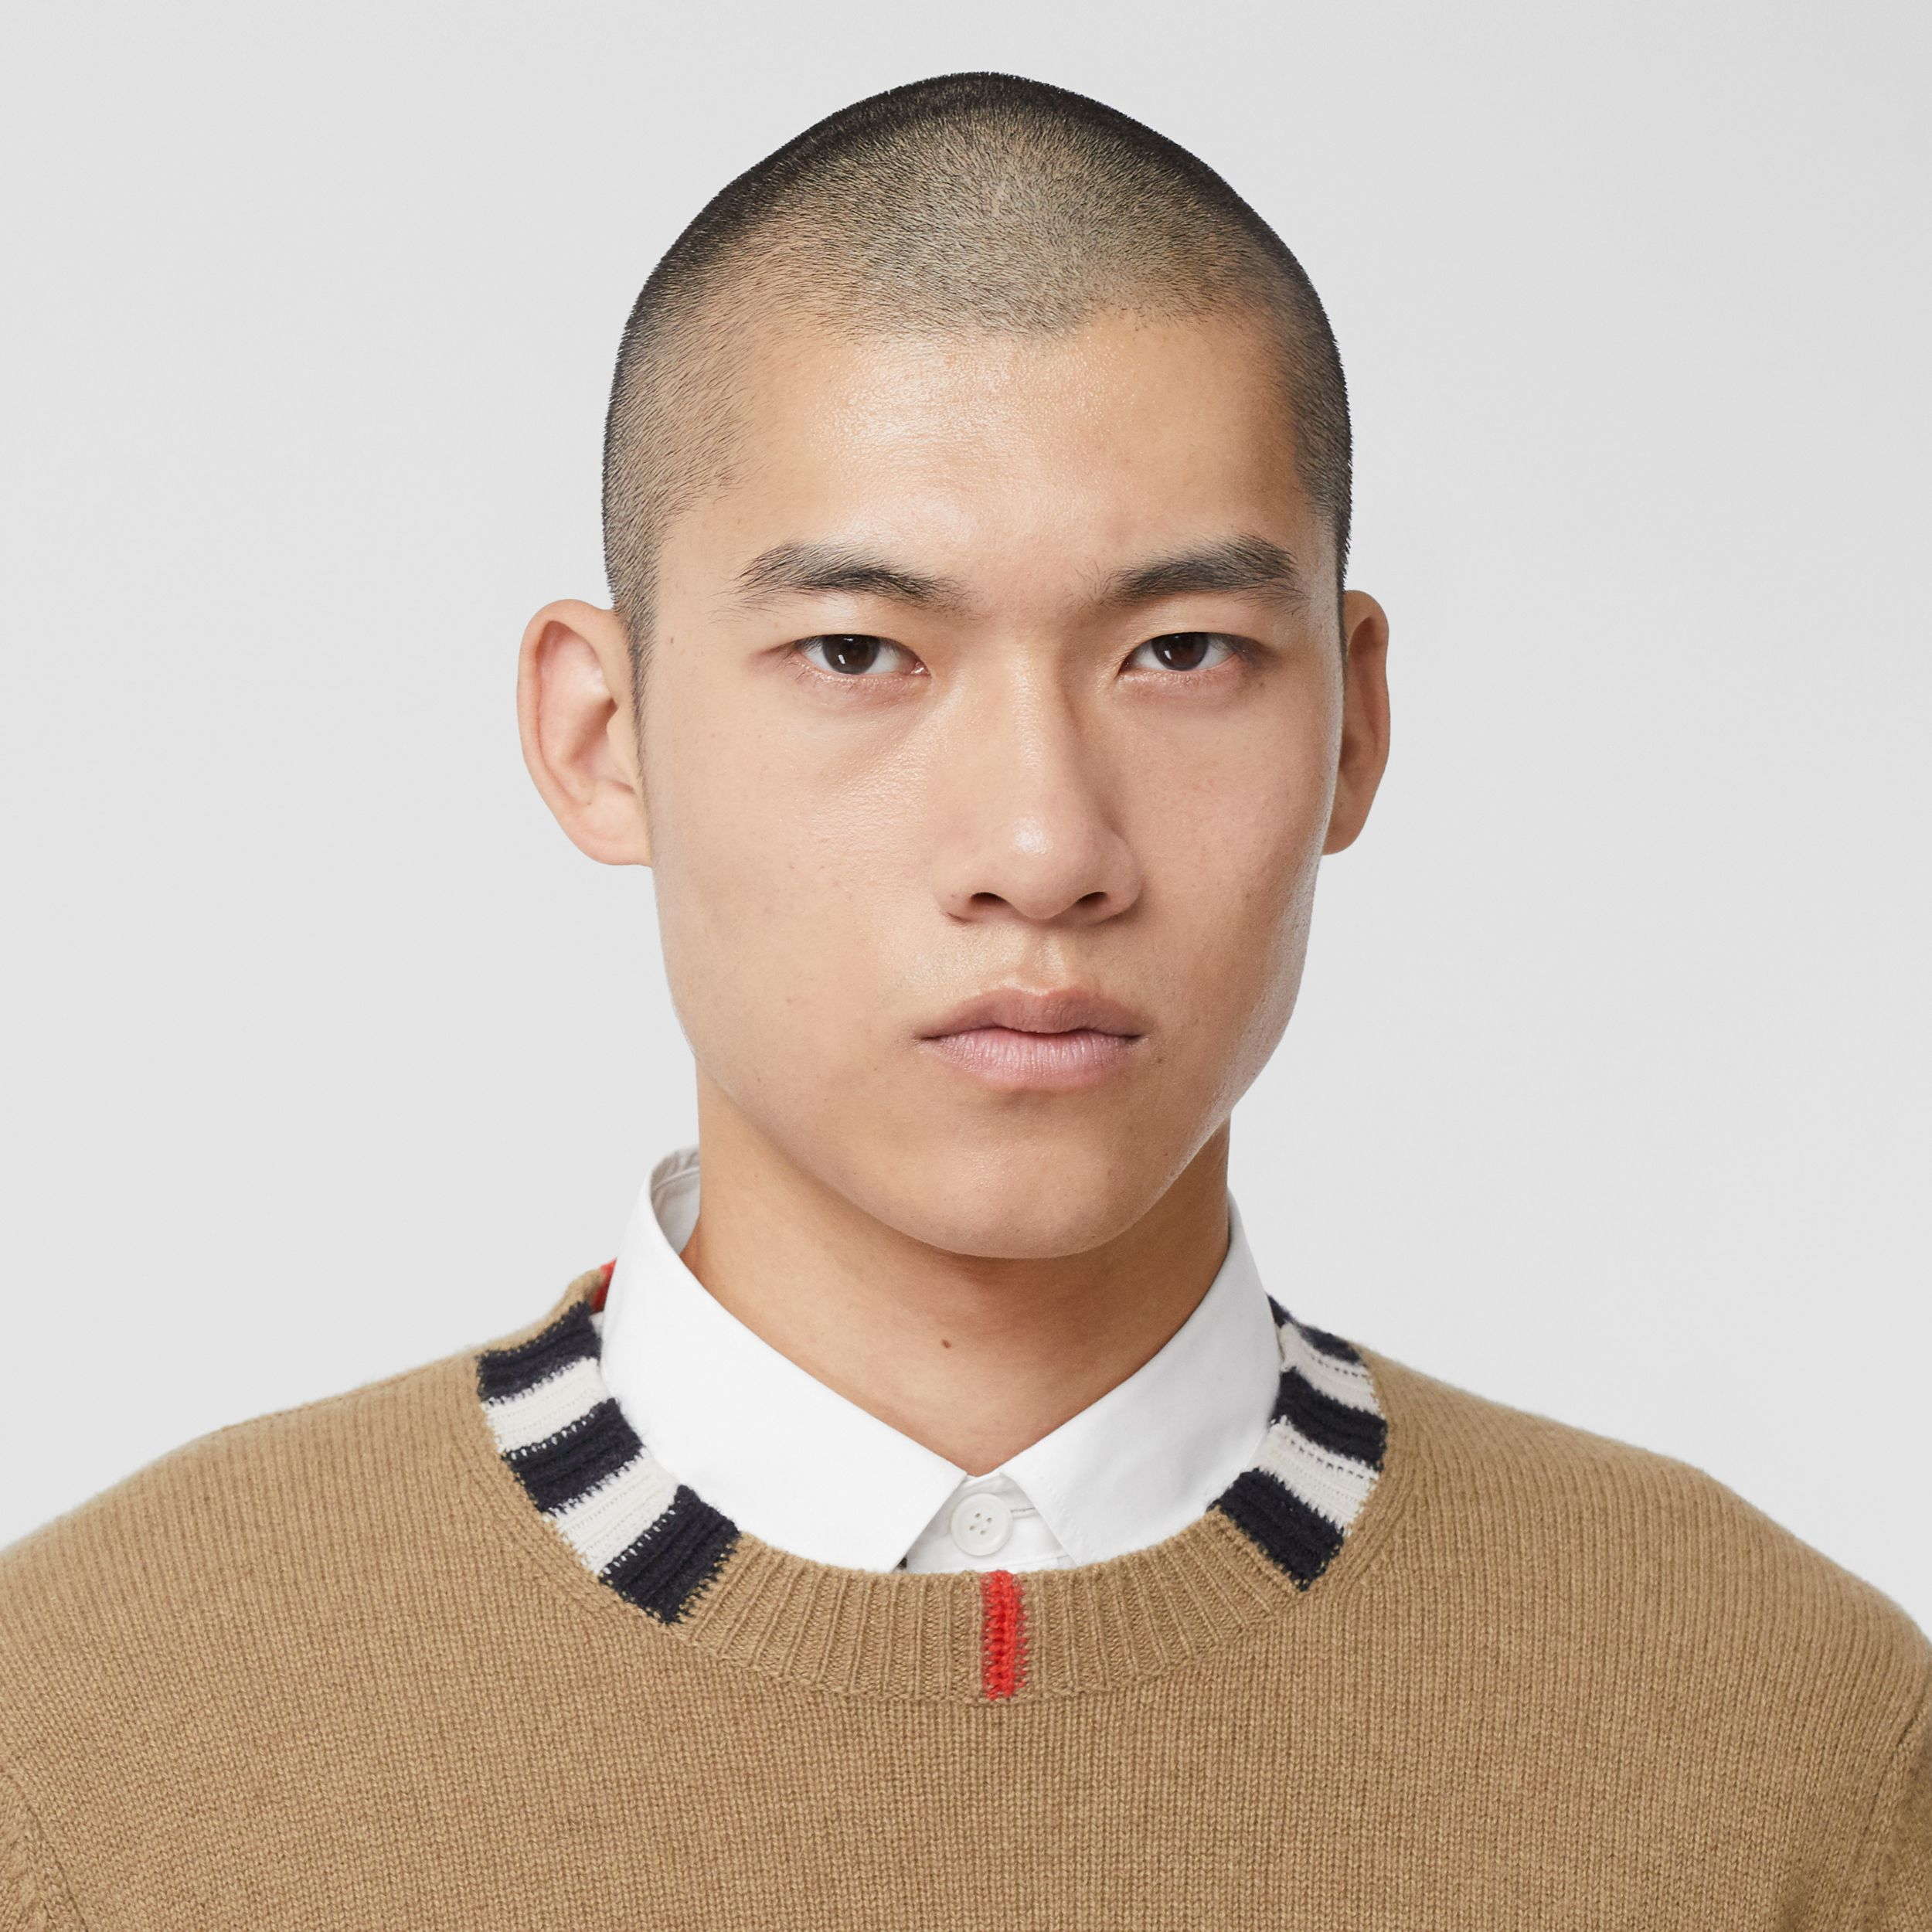 Icon Stripe Trim Cashmere Sweater in Camel - Men | Burberry Hong Kong S.A.R. - 2